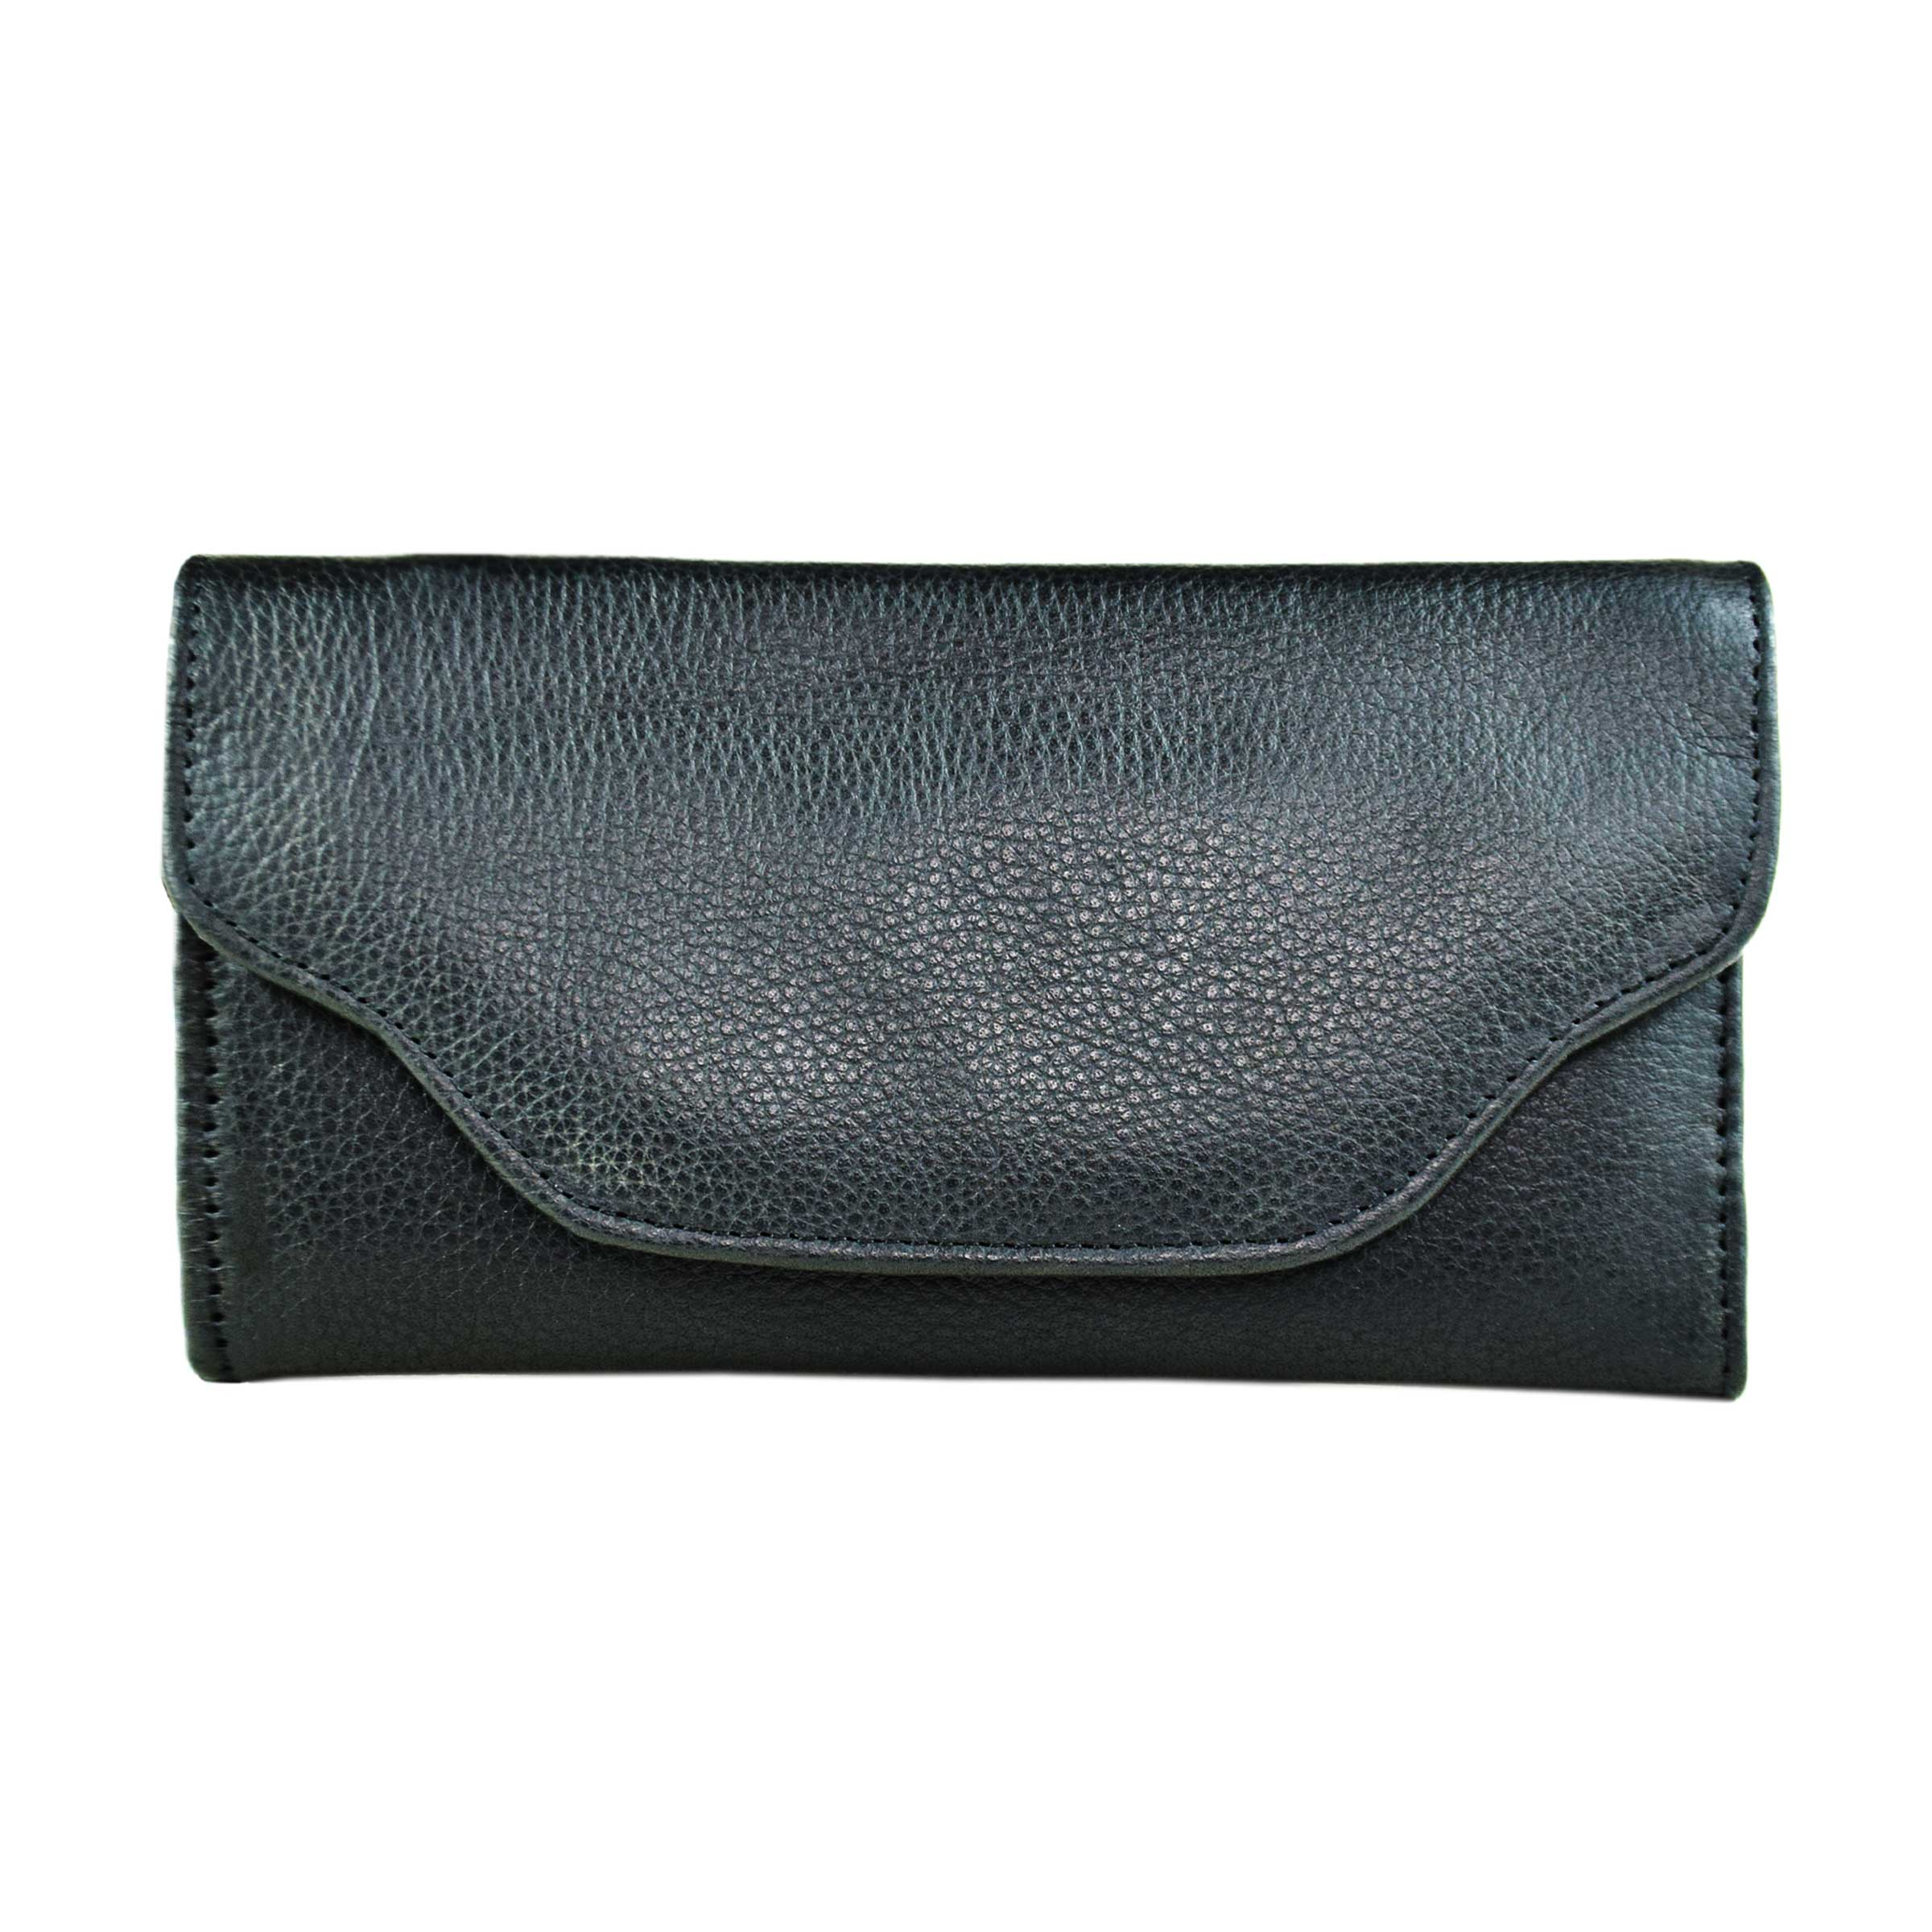 BLACK LADIES CLUTCH WTIH LEATHER GRAINS